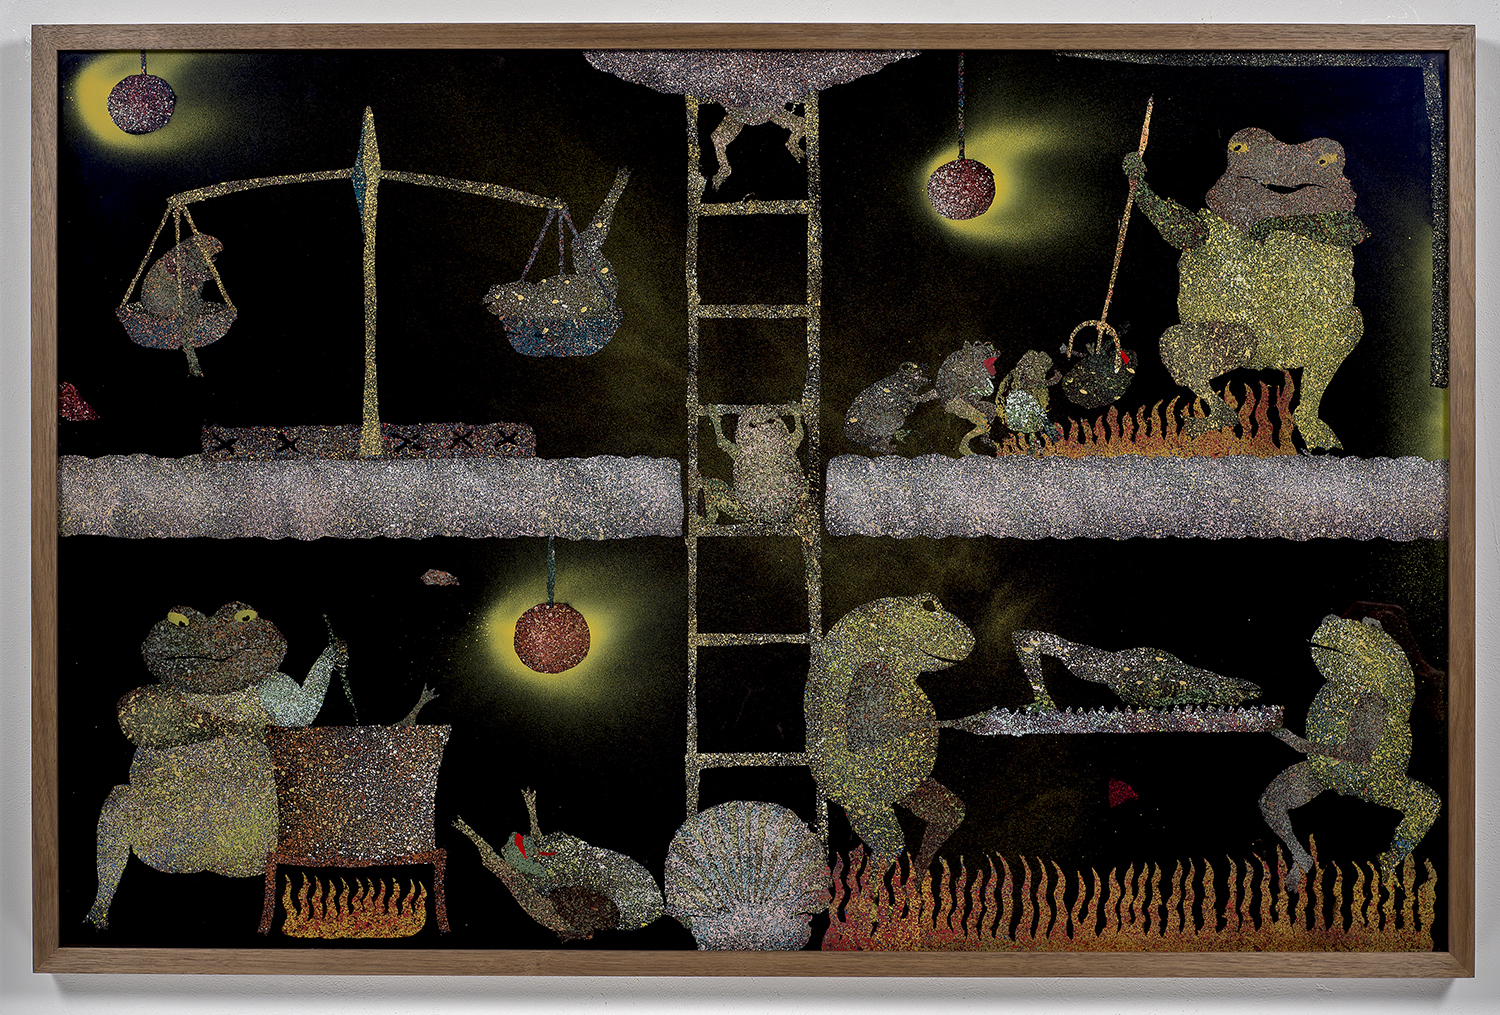 Vision of the    purgatorial ladder    with frogs and toads   hinterglasmalerei  acrylic on glass   walnut frame  2017  120x100cm